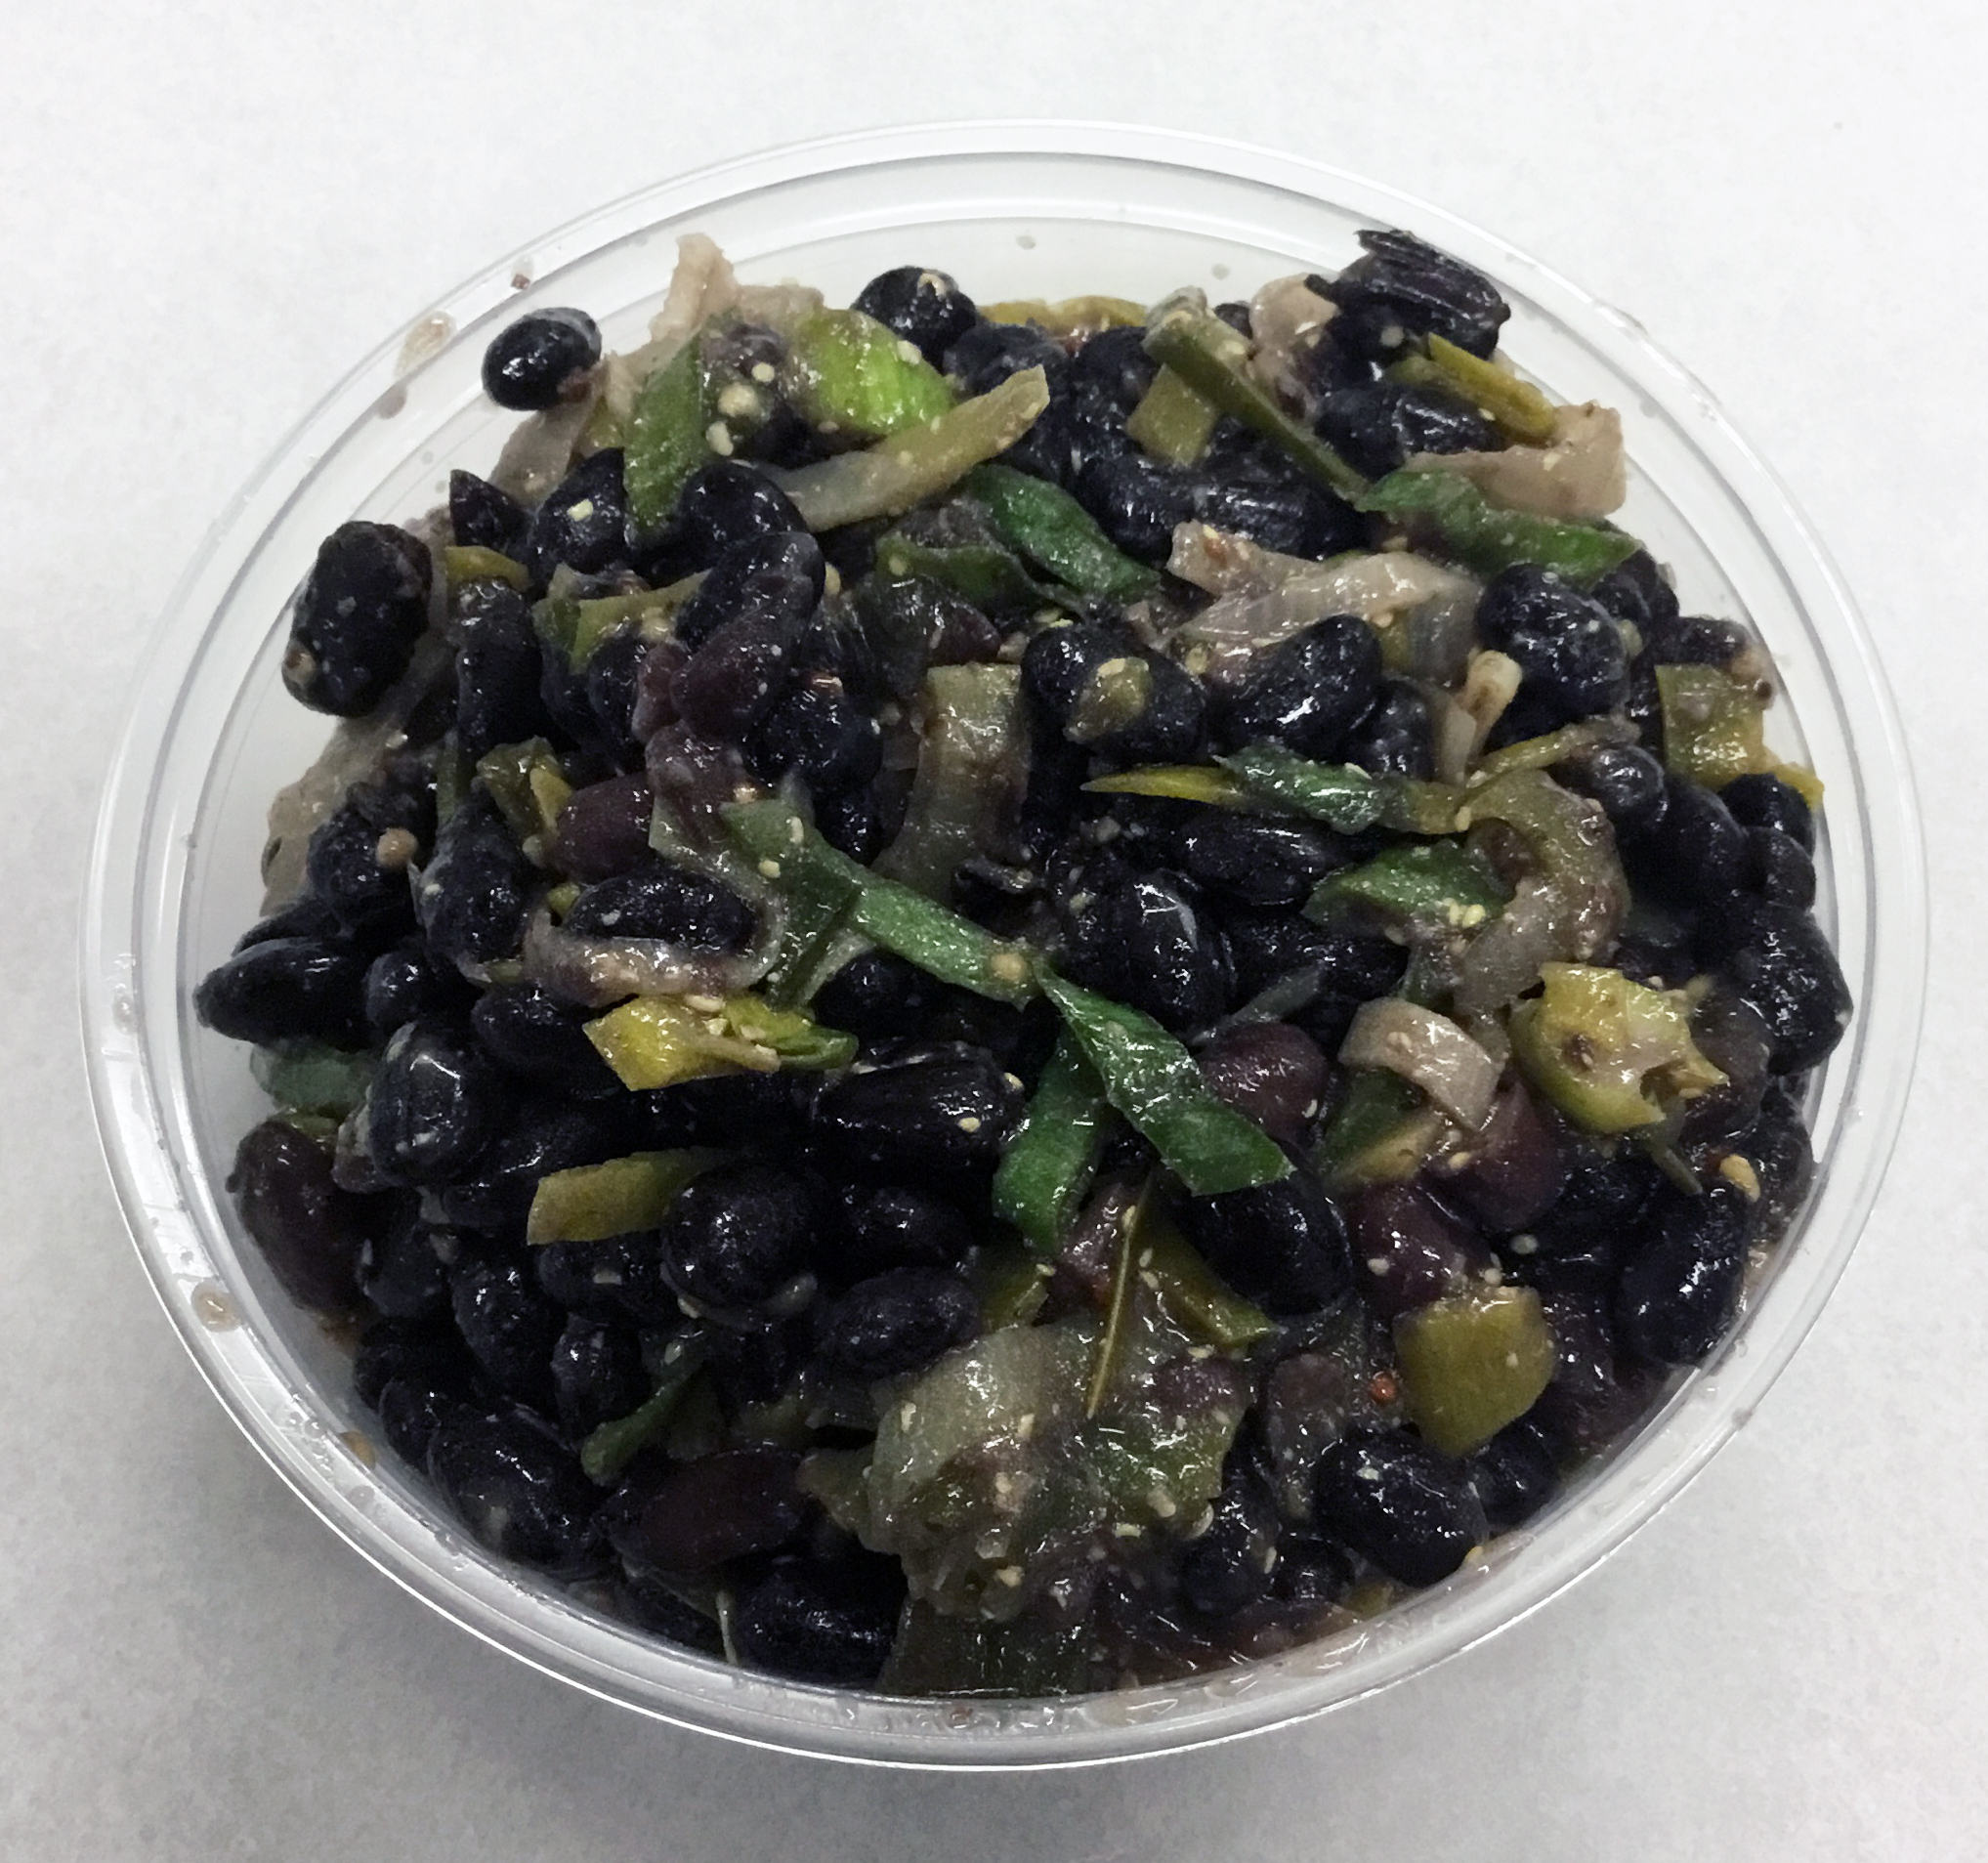 Black beans with leeks and stone ground mustard.